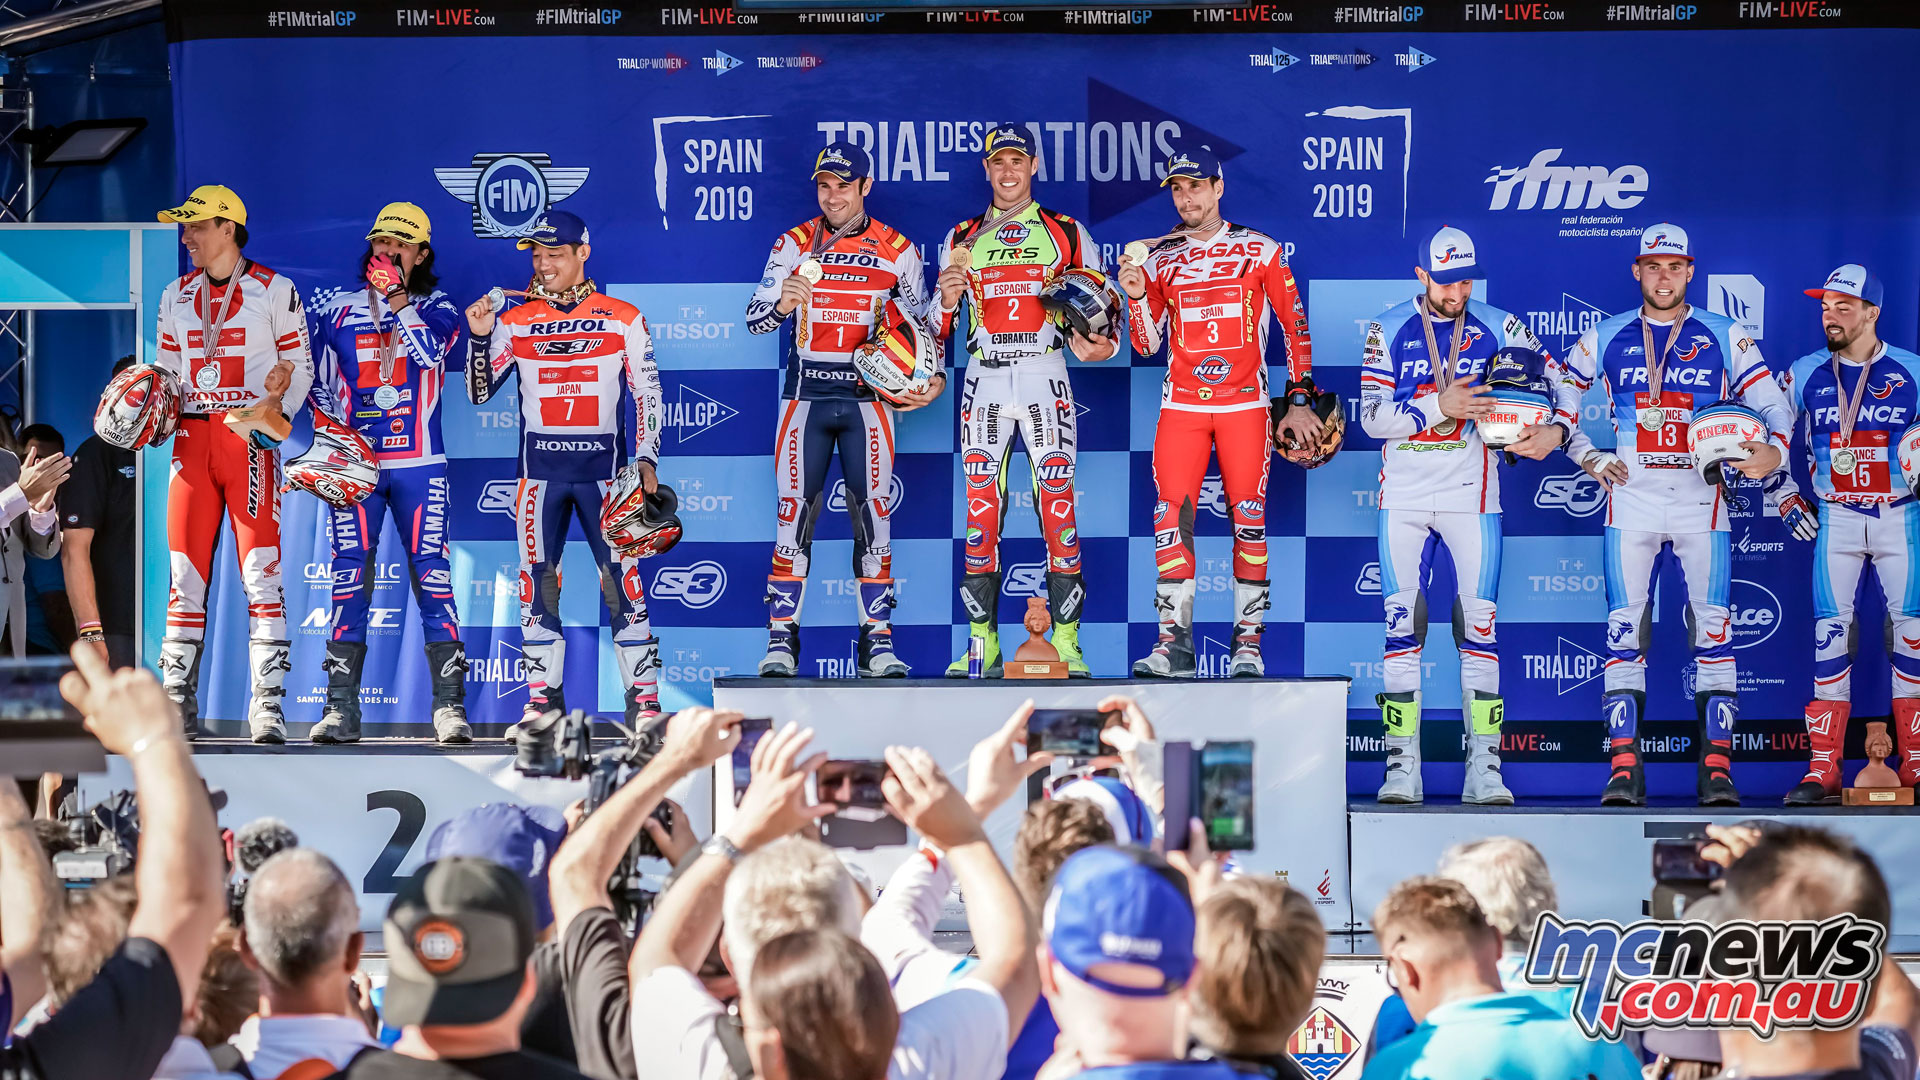 trialgp tdn podiums ps